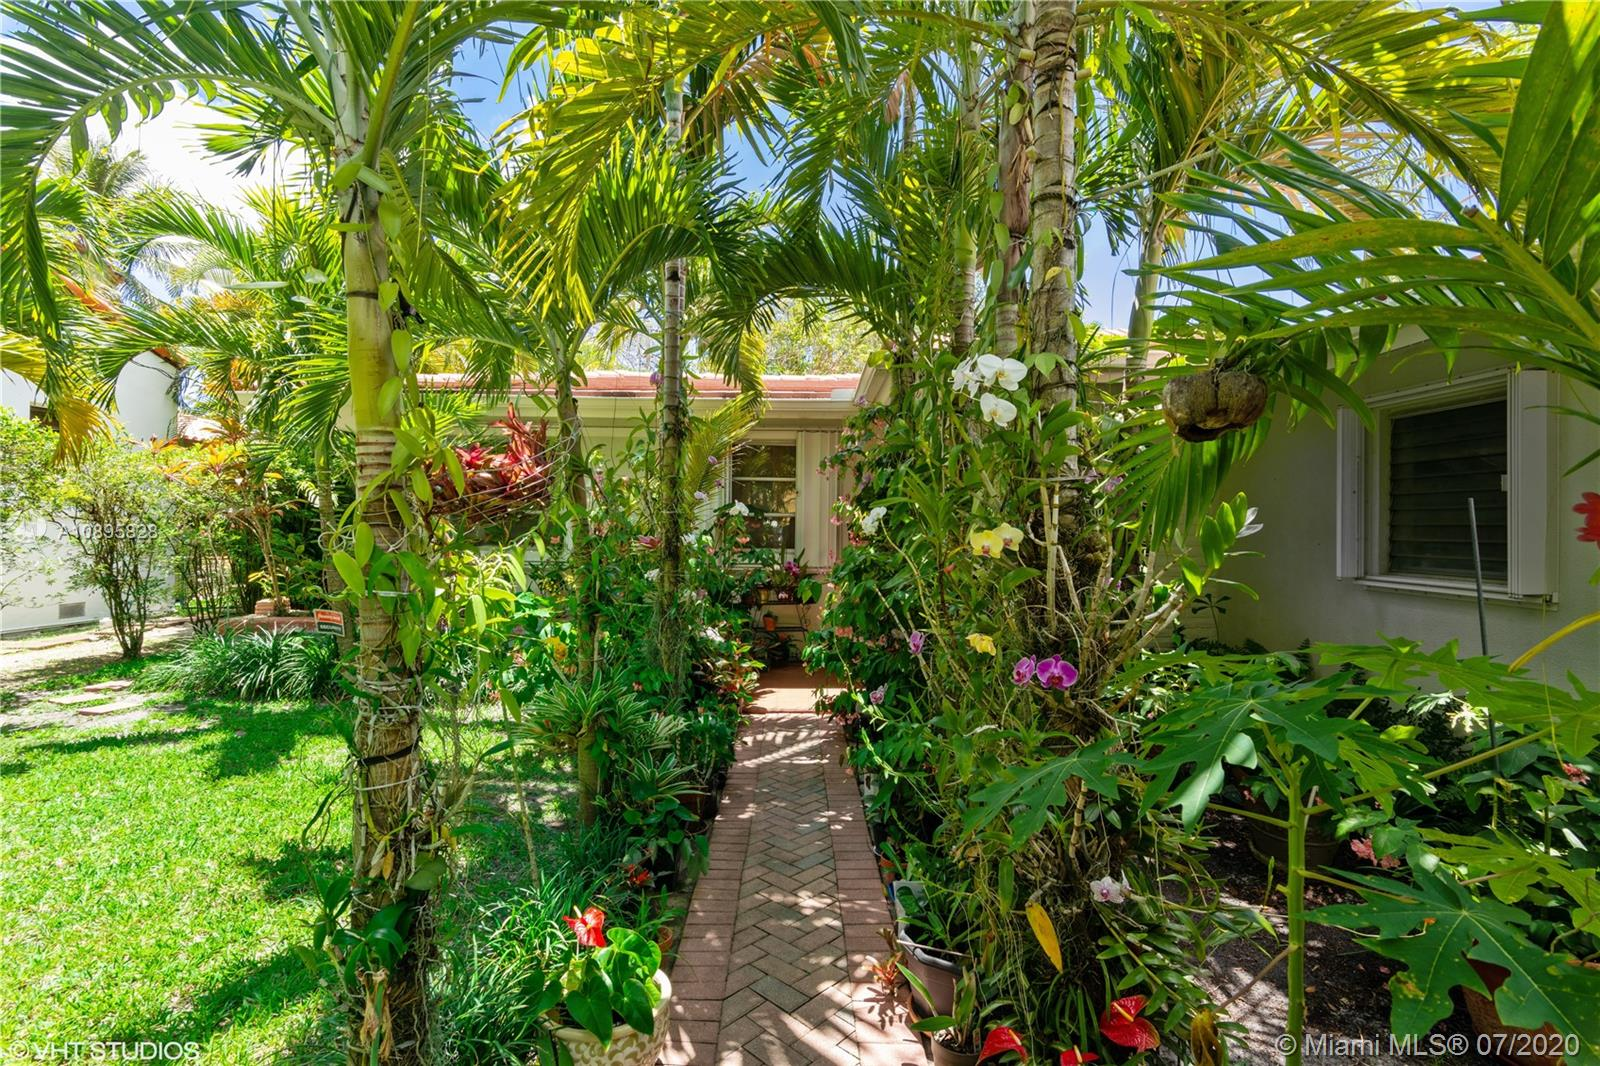 image #1 of property, Coral Gables Country Club